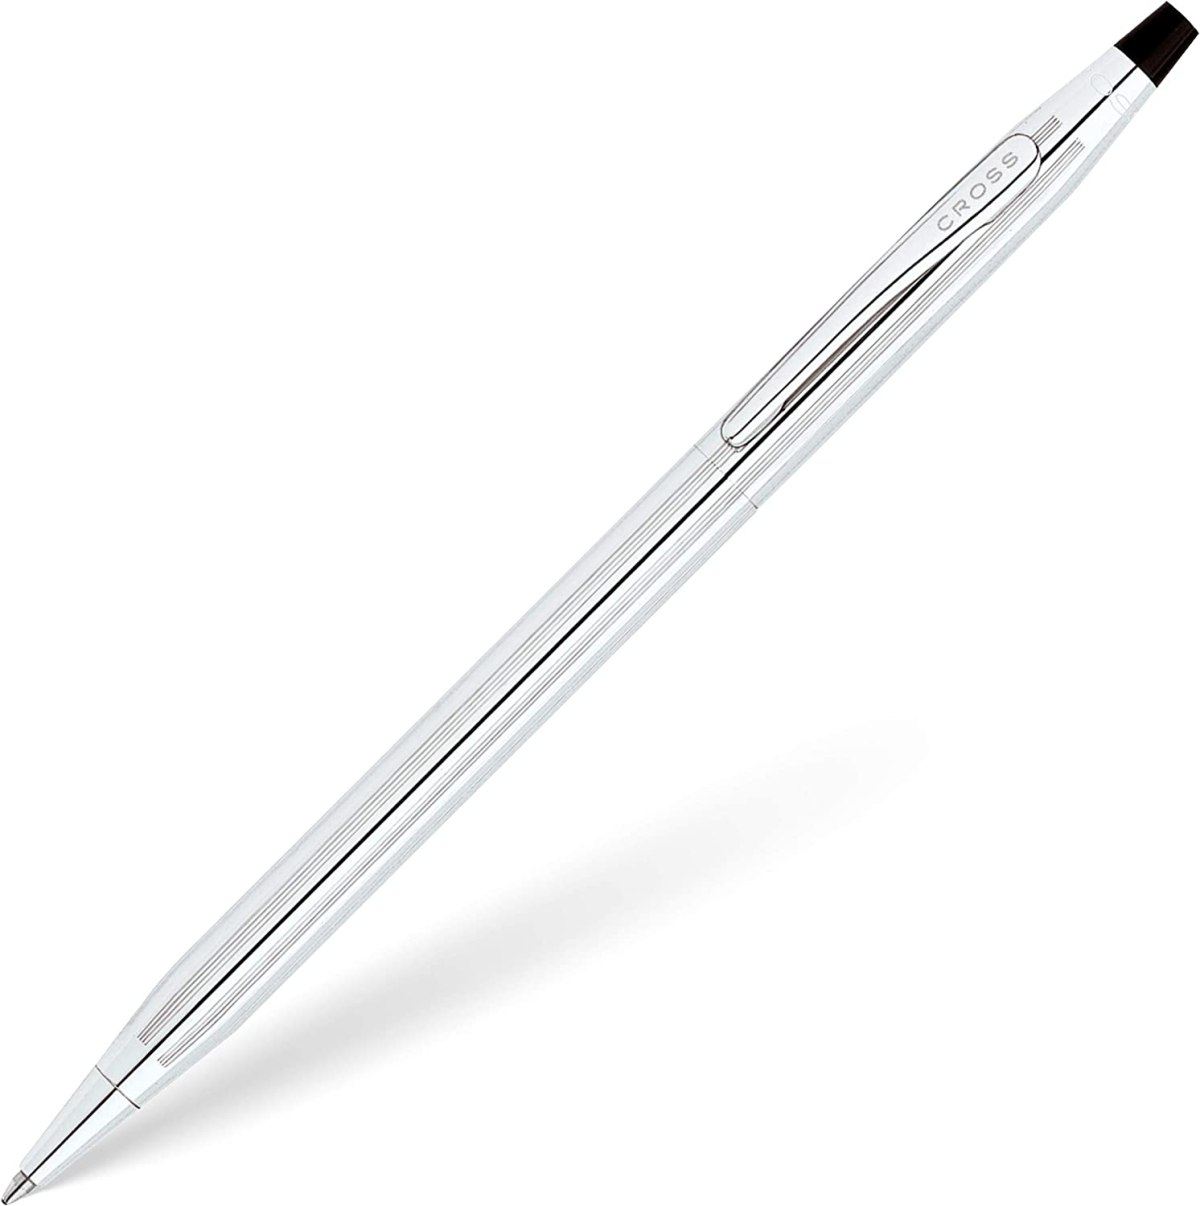 Top 15 Best Pens For Gift (Gift Pen Review For 2021) 5